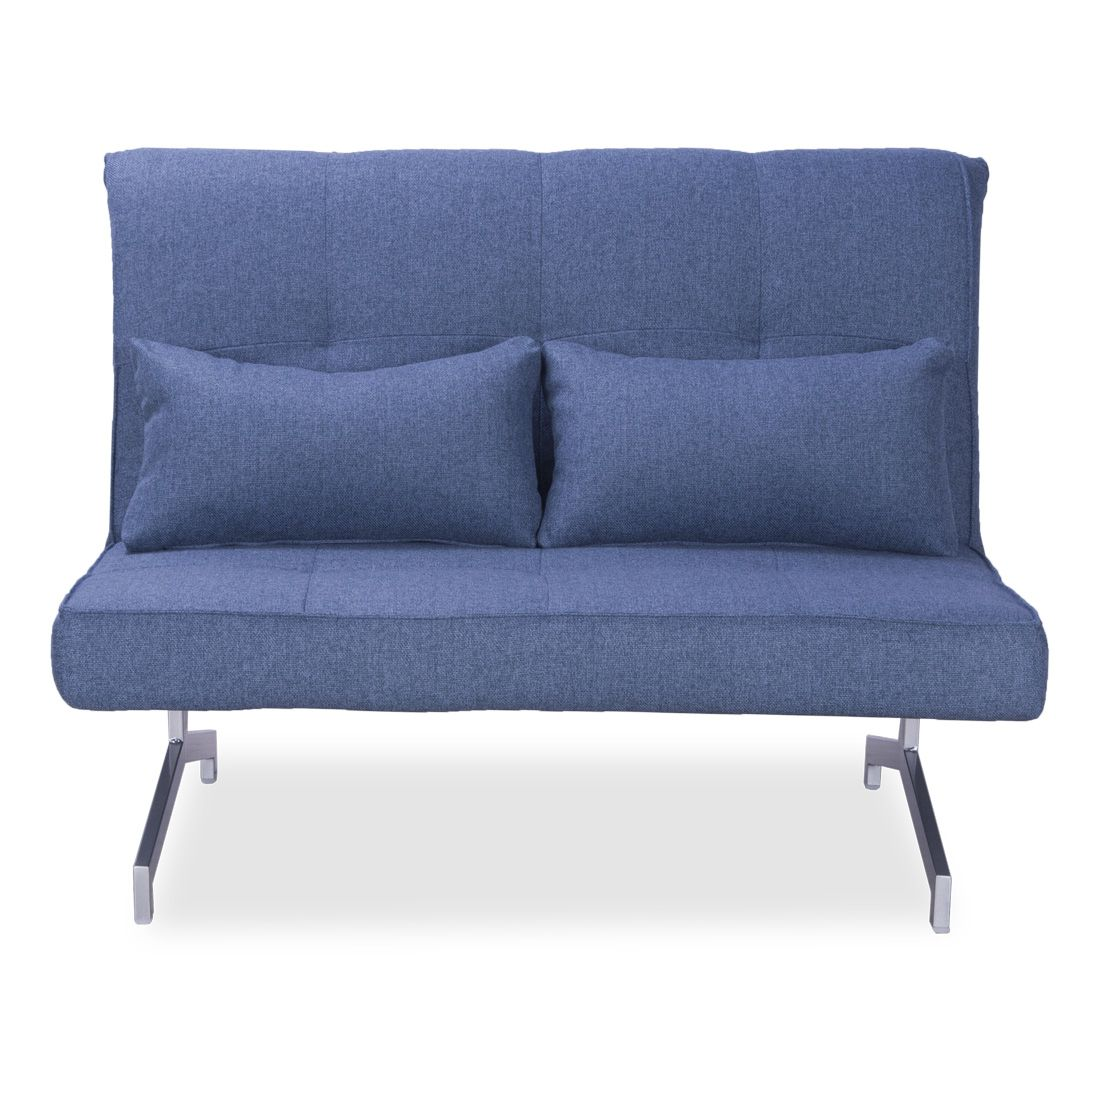 Schlafsofas Rund In Grey New House Pinterest Schlafsofa Couch And Sofa